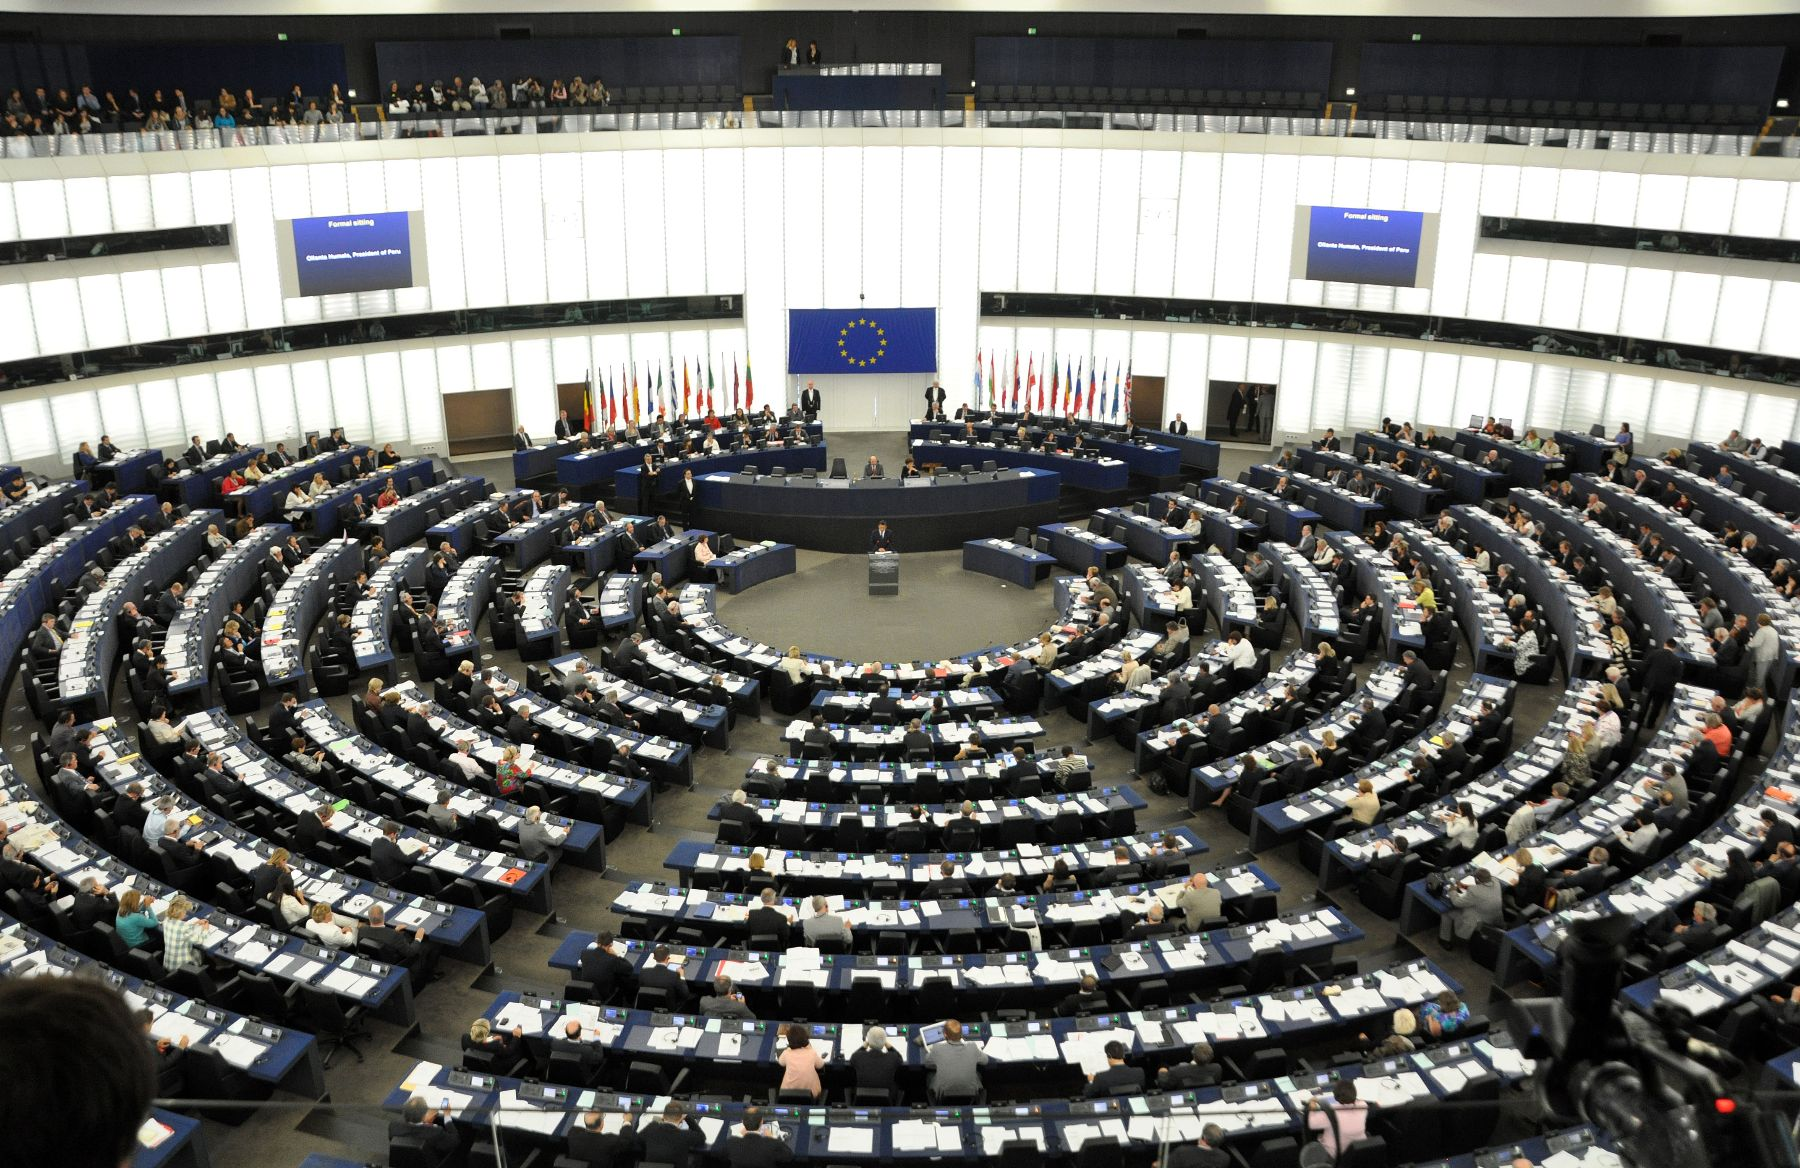 European Parliament. Photo: ANDINA/Prensa Presidencia